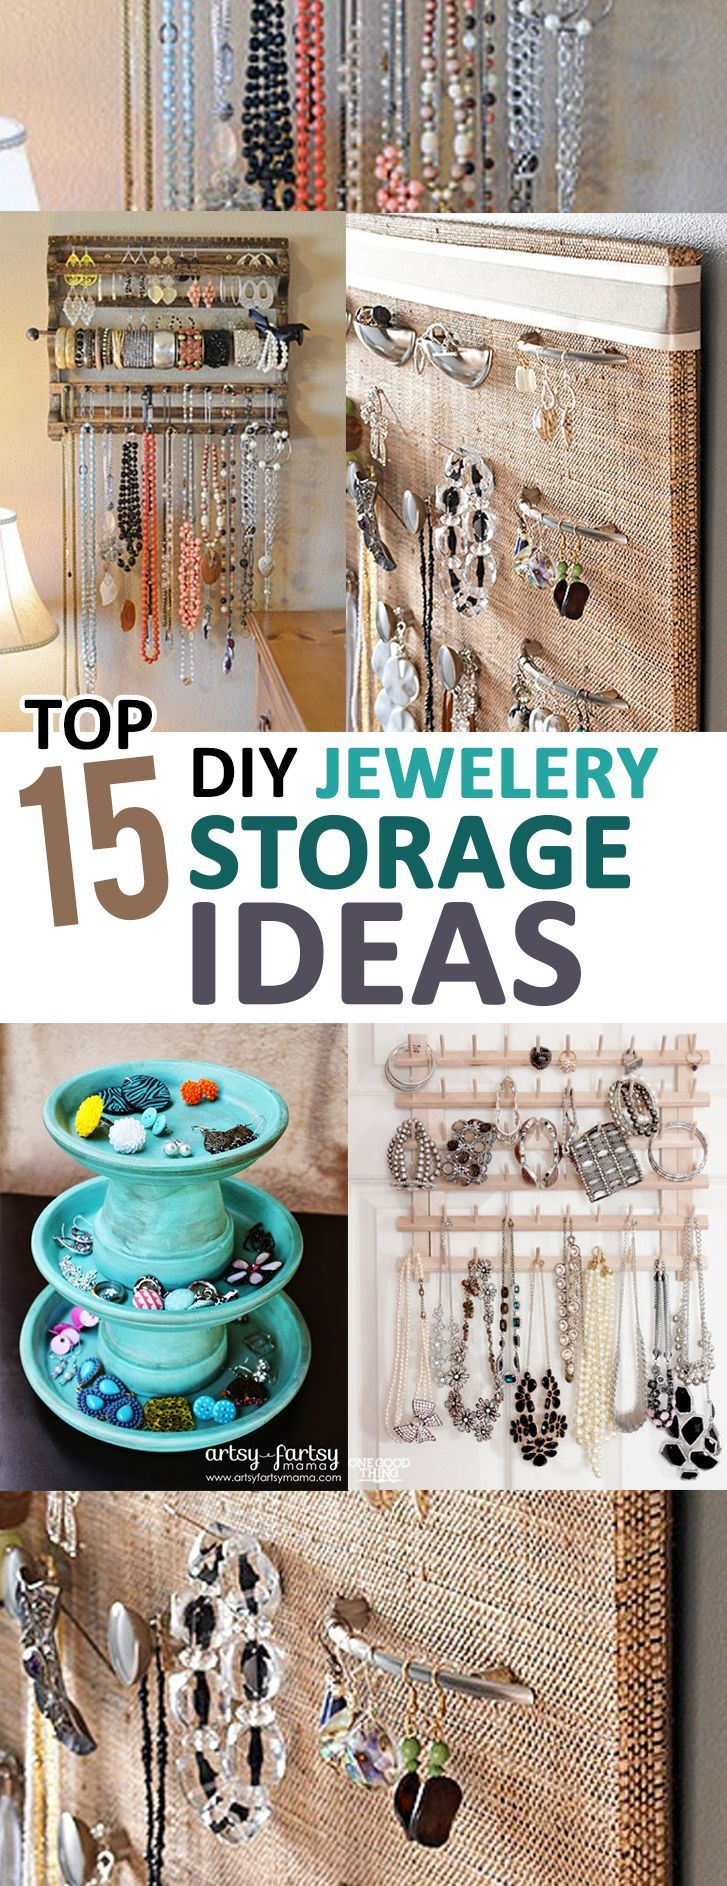 interior: Awesome Design For Clean White Jewelry Holder Diy With Necklaces  Knobs And Long Bracelet